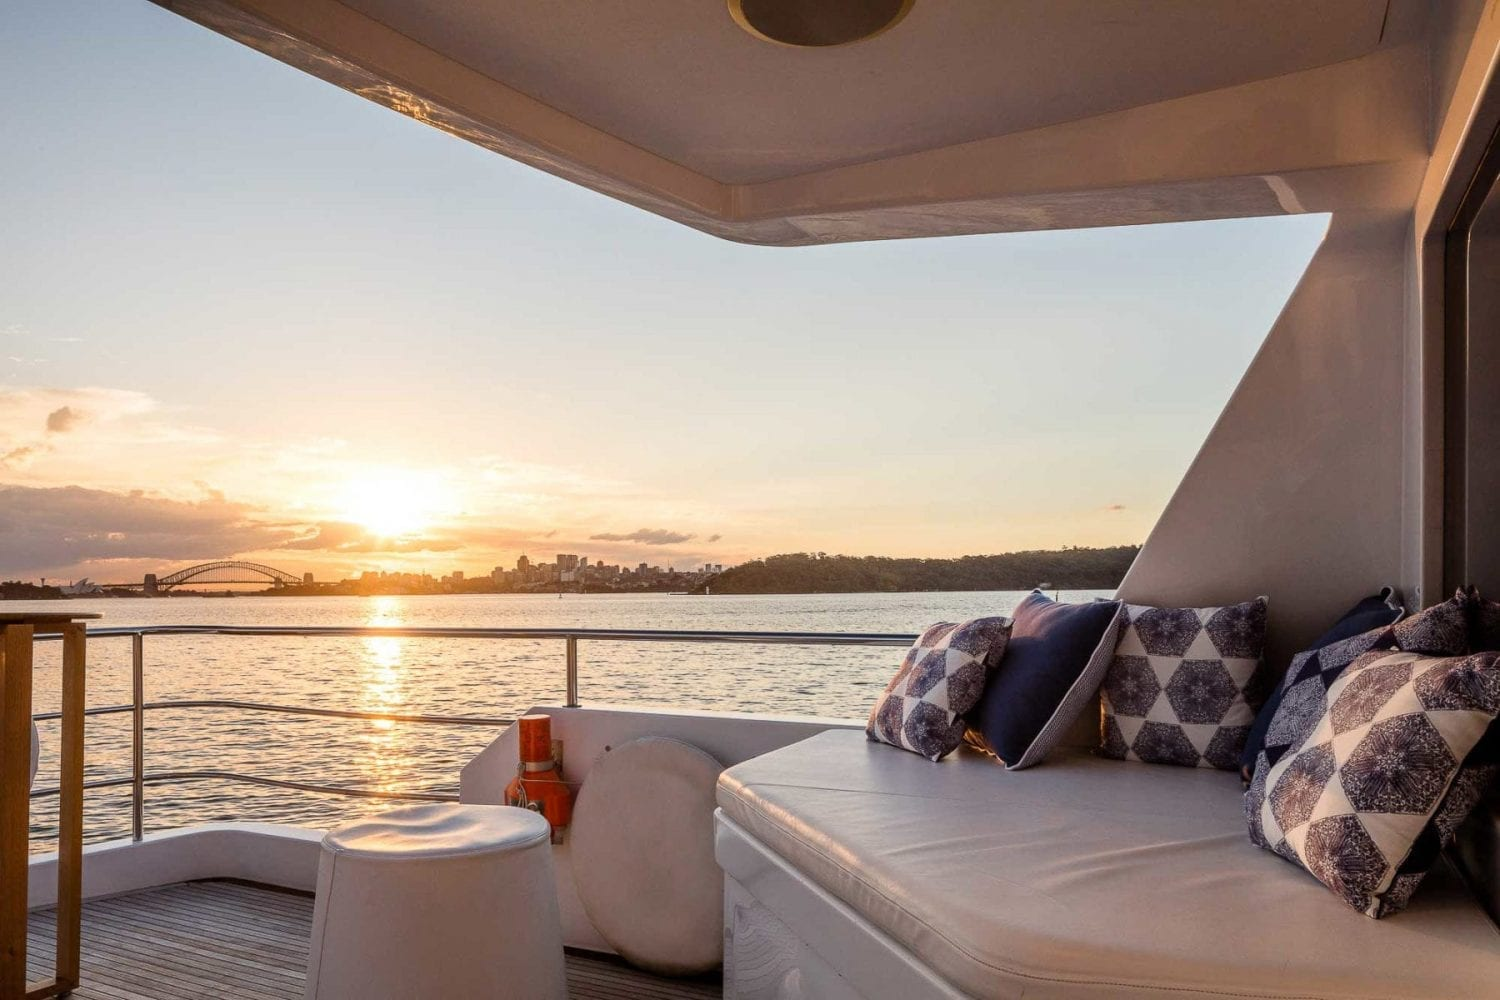 Private Yacht & Boat Hire on Sydney Harbour